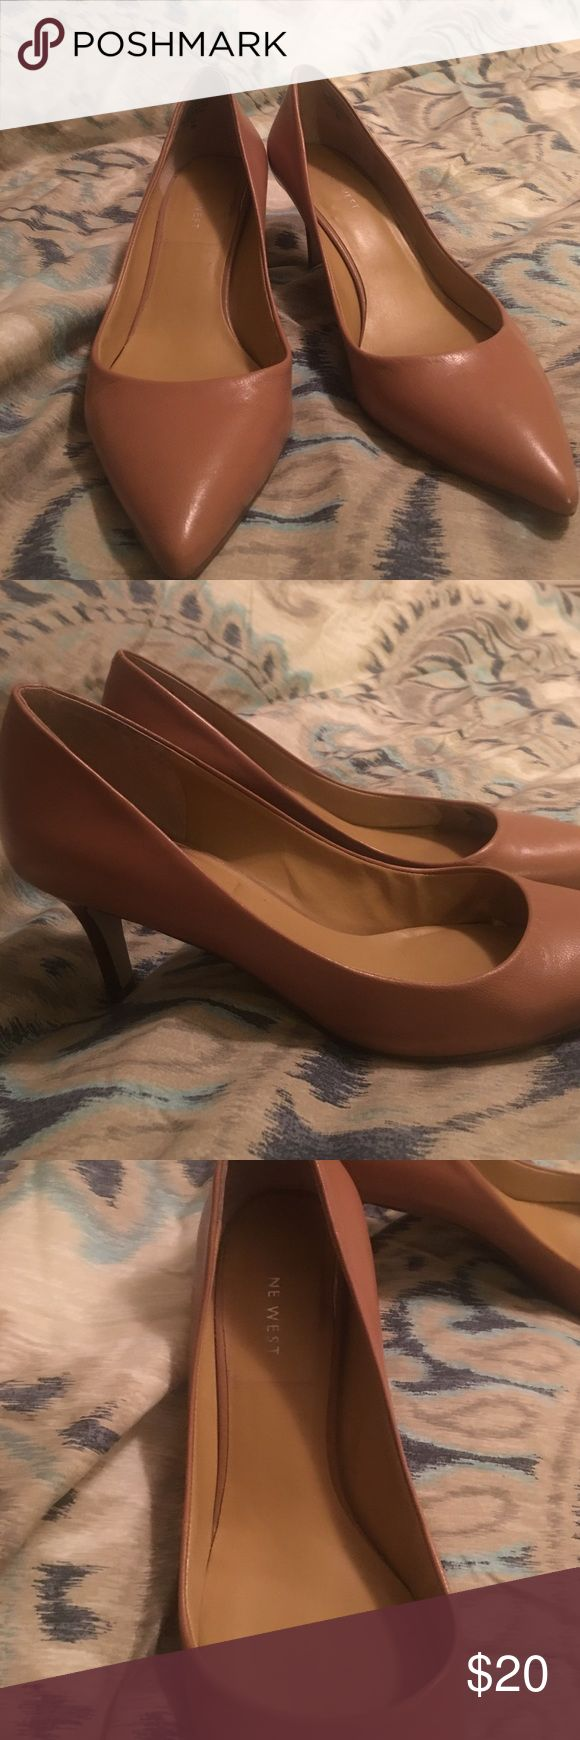 Nine West Tan High-heel Size 9M tan high heel with 3 inch heel. Worn gently. Nine West Shoes Heels